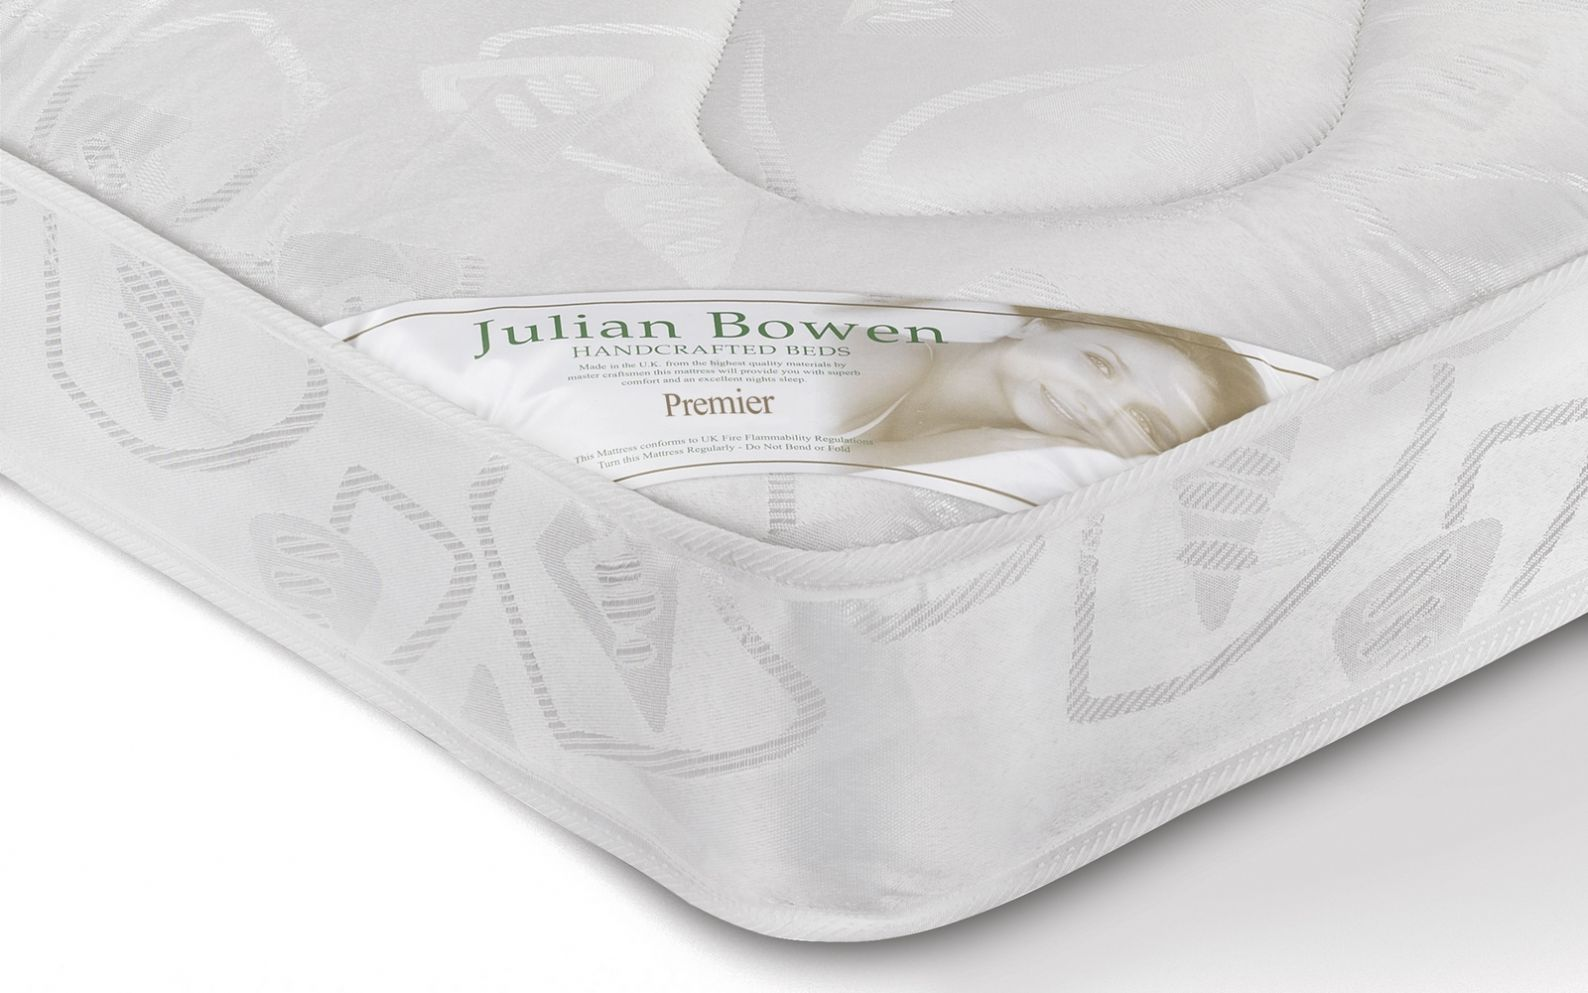 Julian Bowen Single Premier Mattress